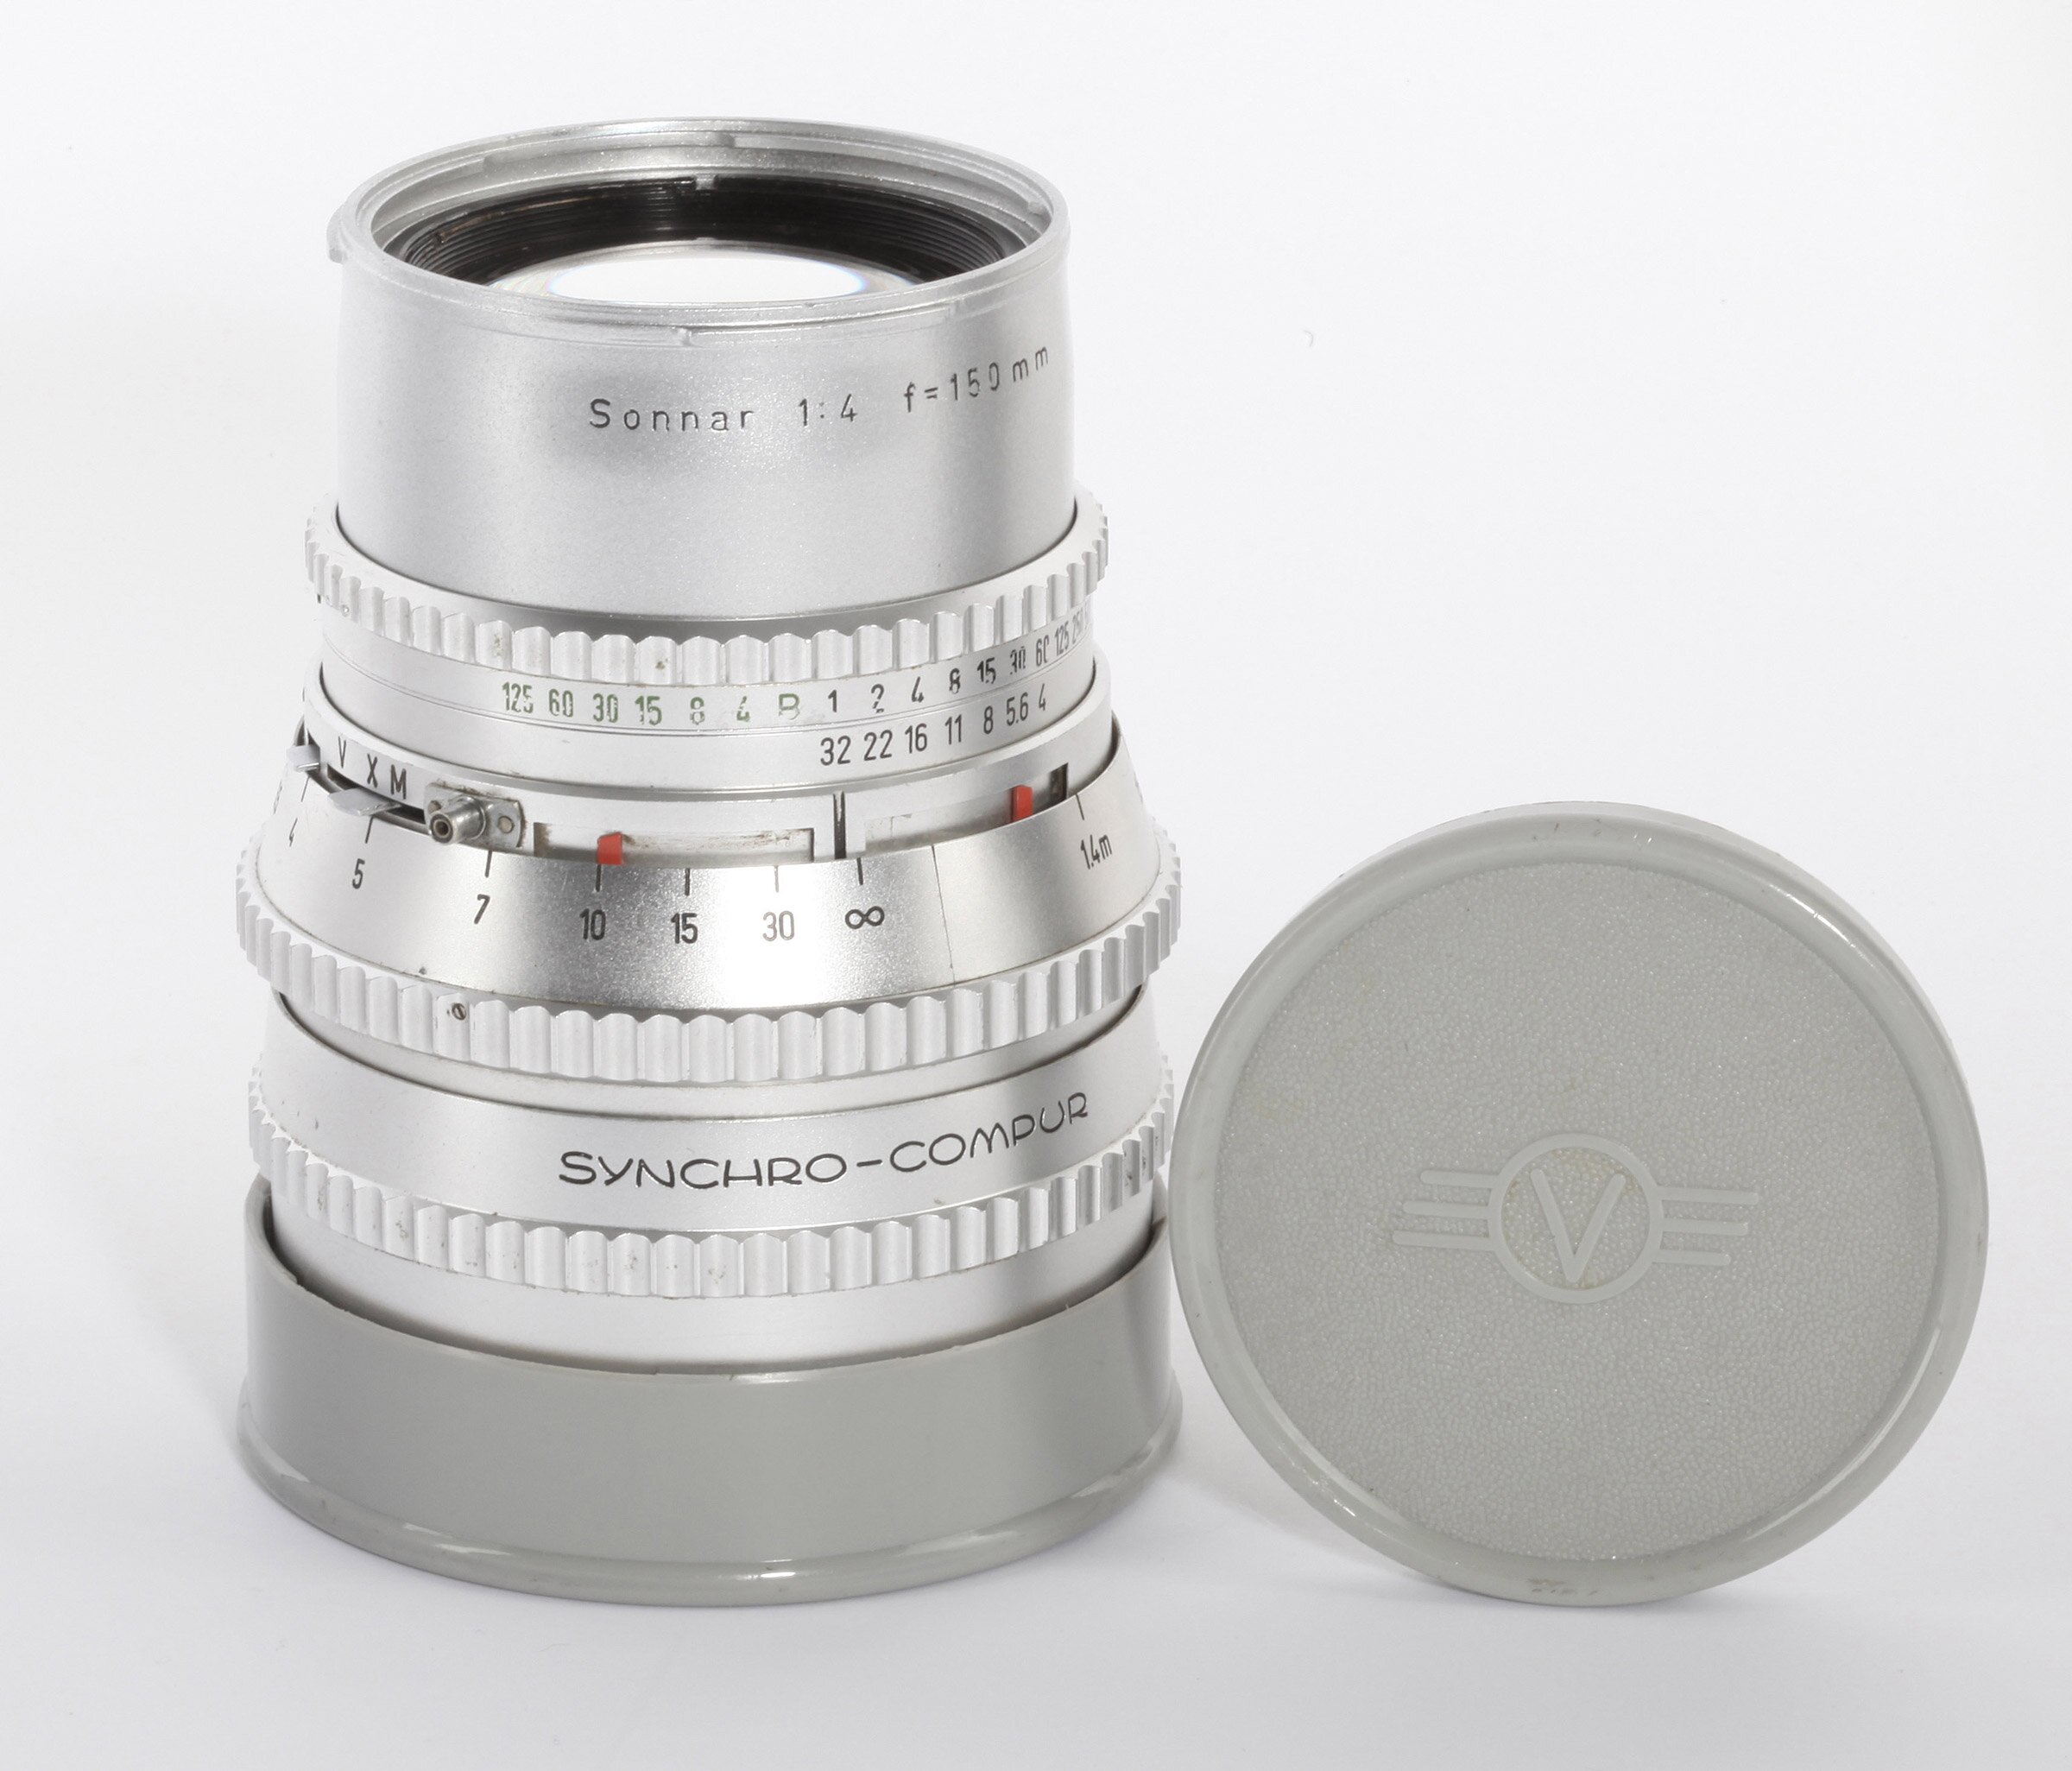 Hasselblad C 150mm 4 Sonnar Carl Zeiss